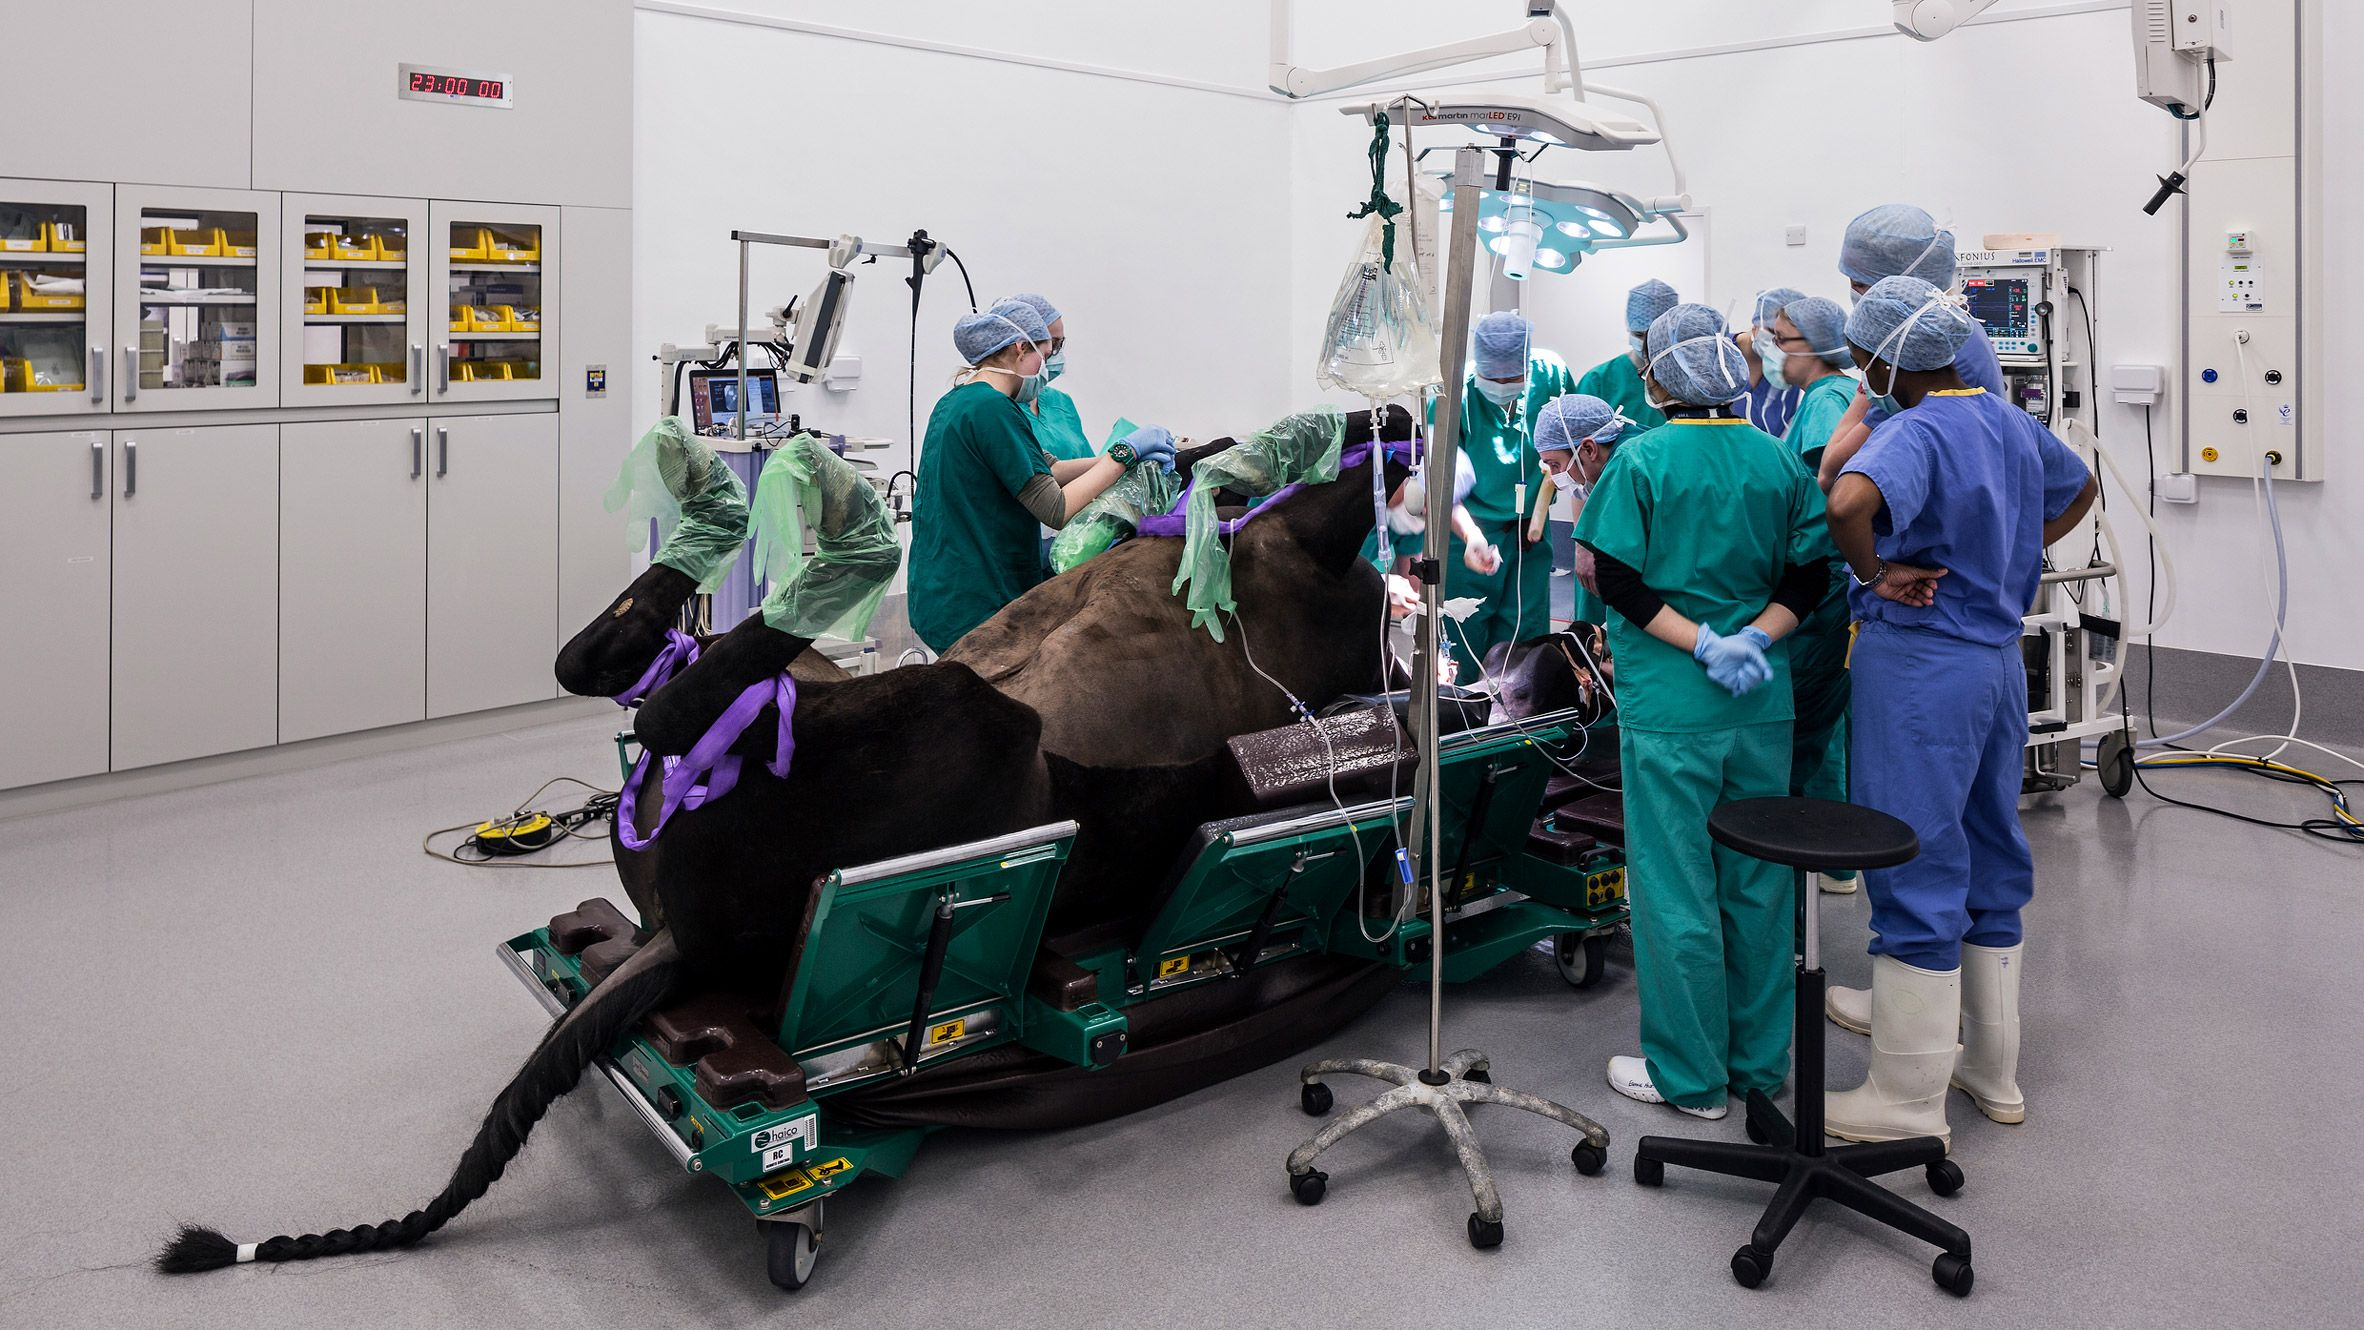 Fourlegged patients should feel right at home at